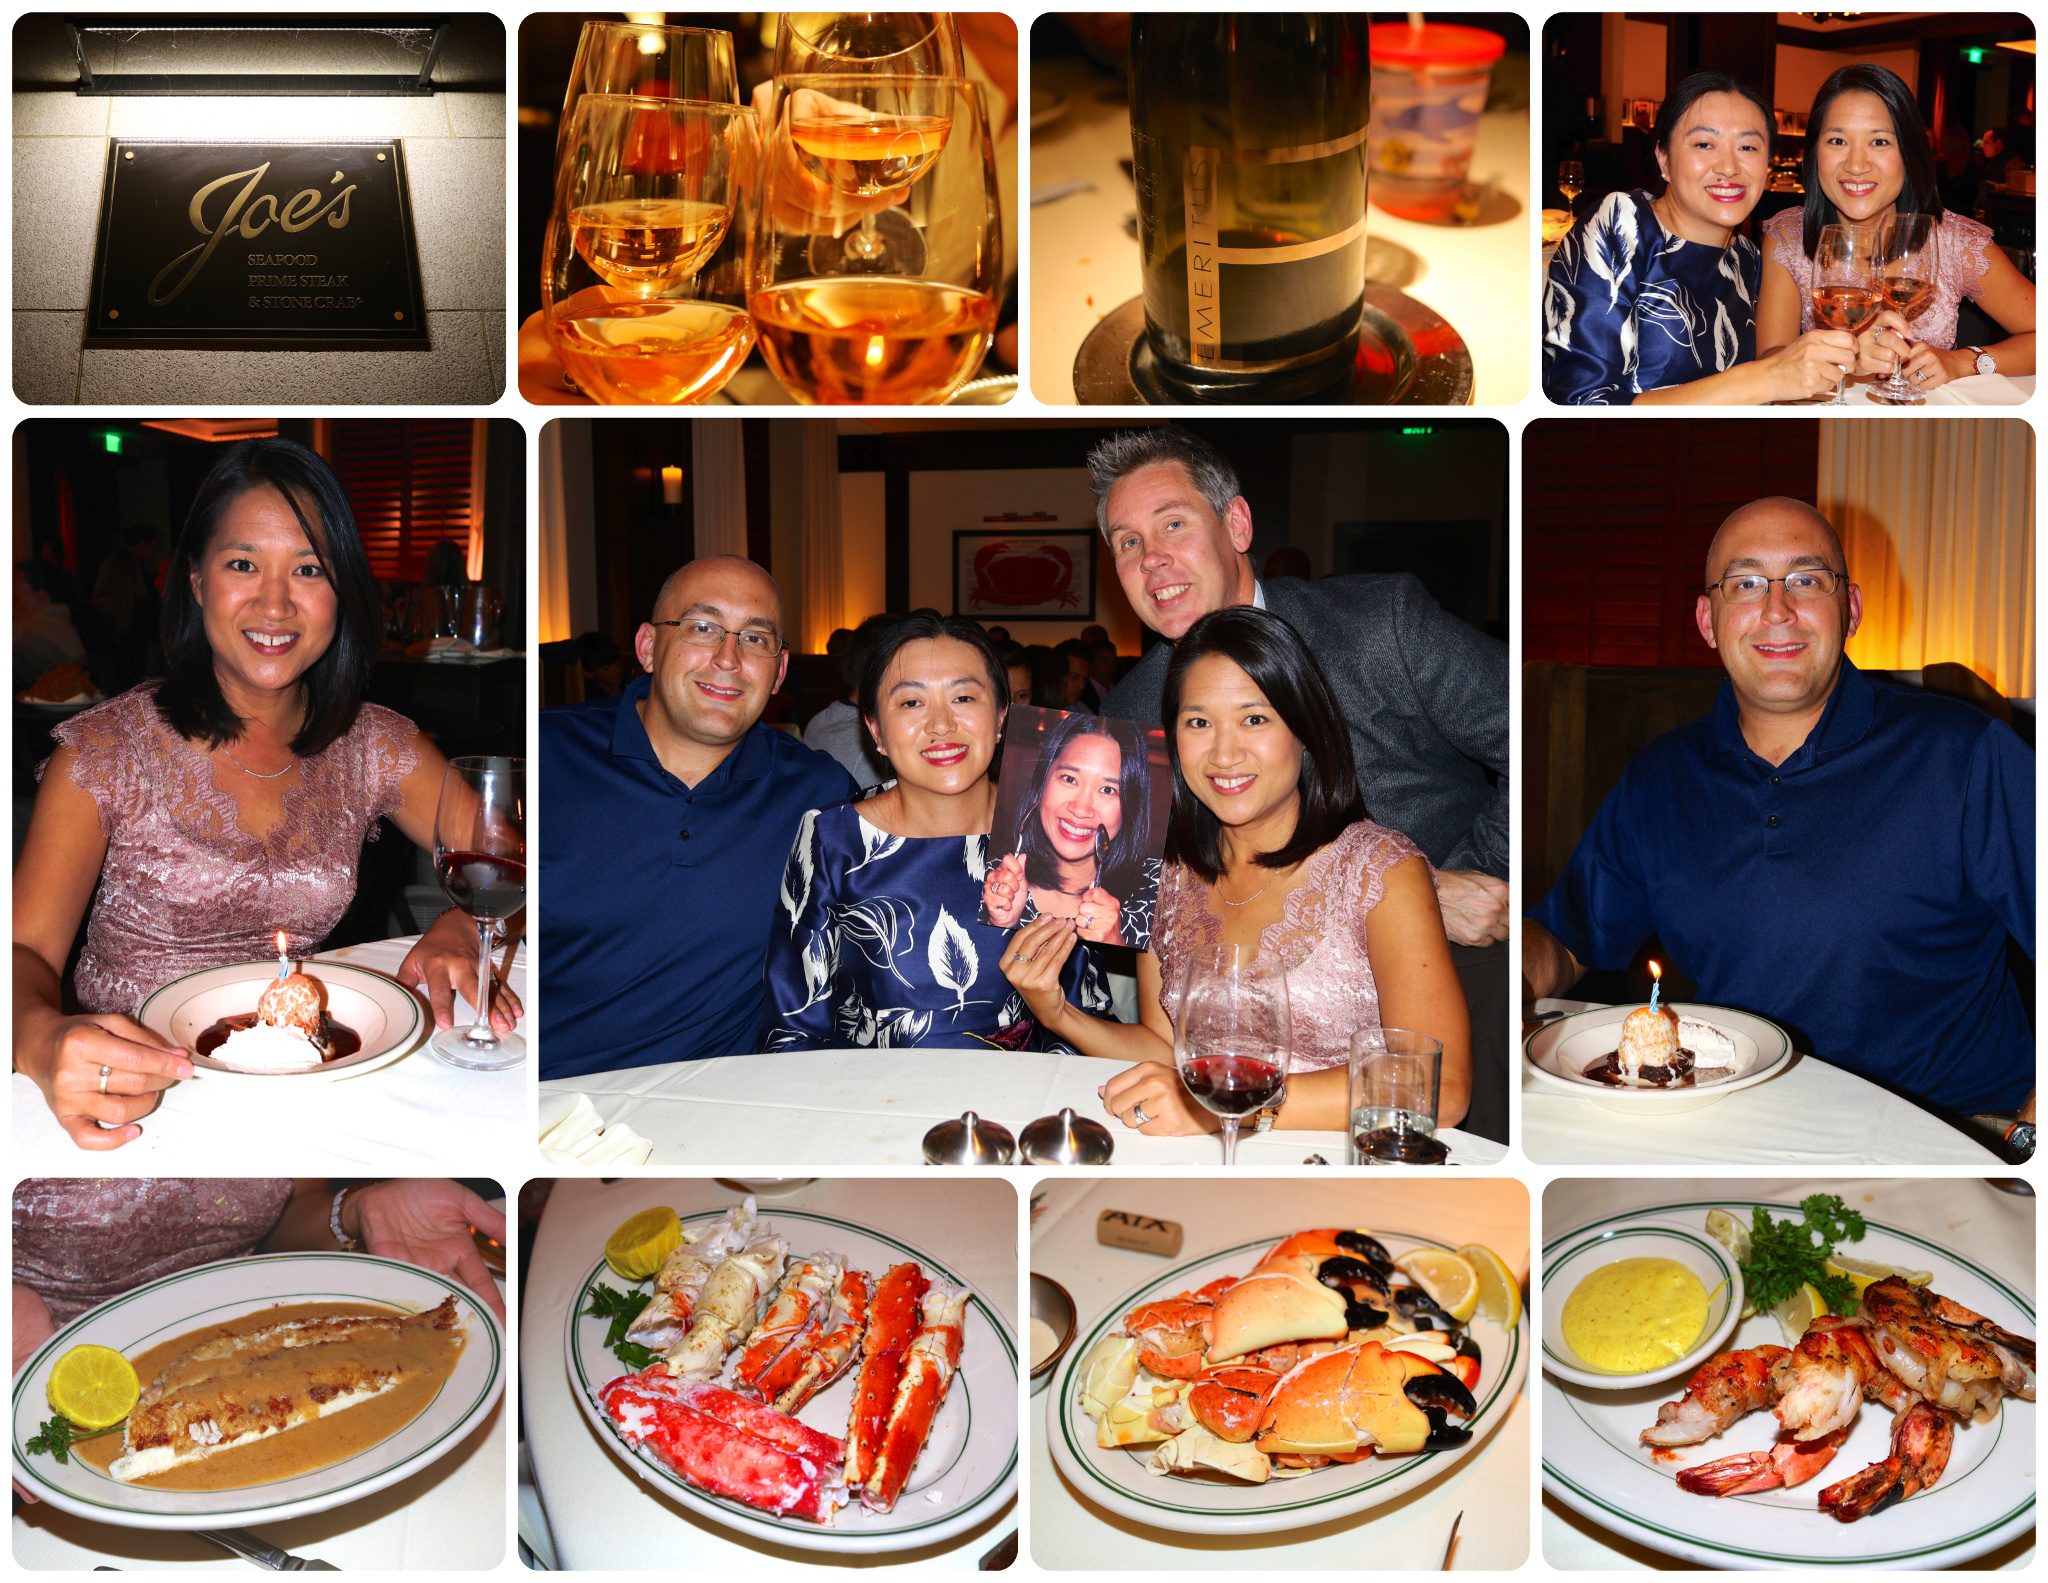 Pake's and Way's, Joe's Seafood, Prime Steak & Stone Crab in Washington, D.C. in October 2015. And we're holding up a photo of Nat's twin sister, Norma, who lives in Thailand, so that she could celebrate with us too! :)